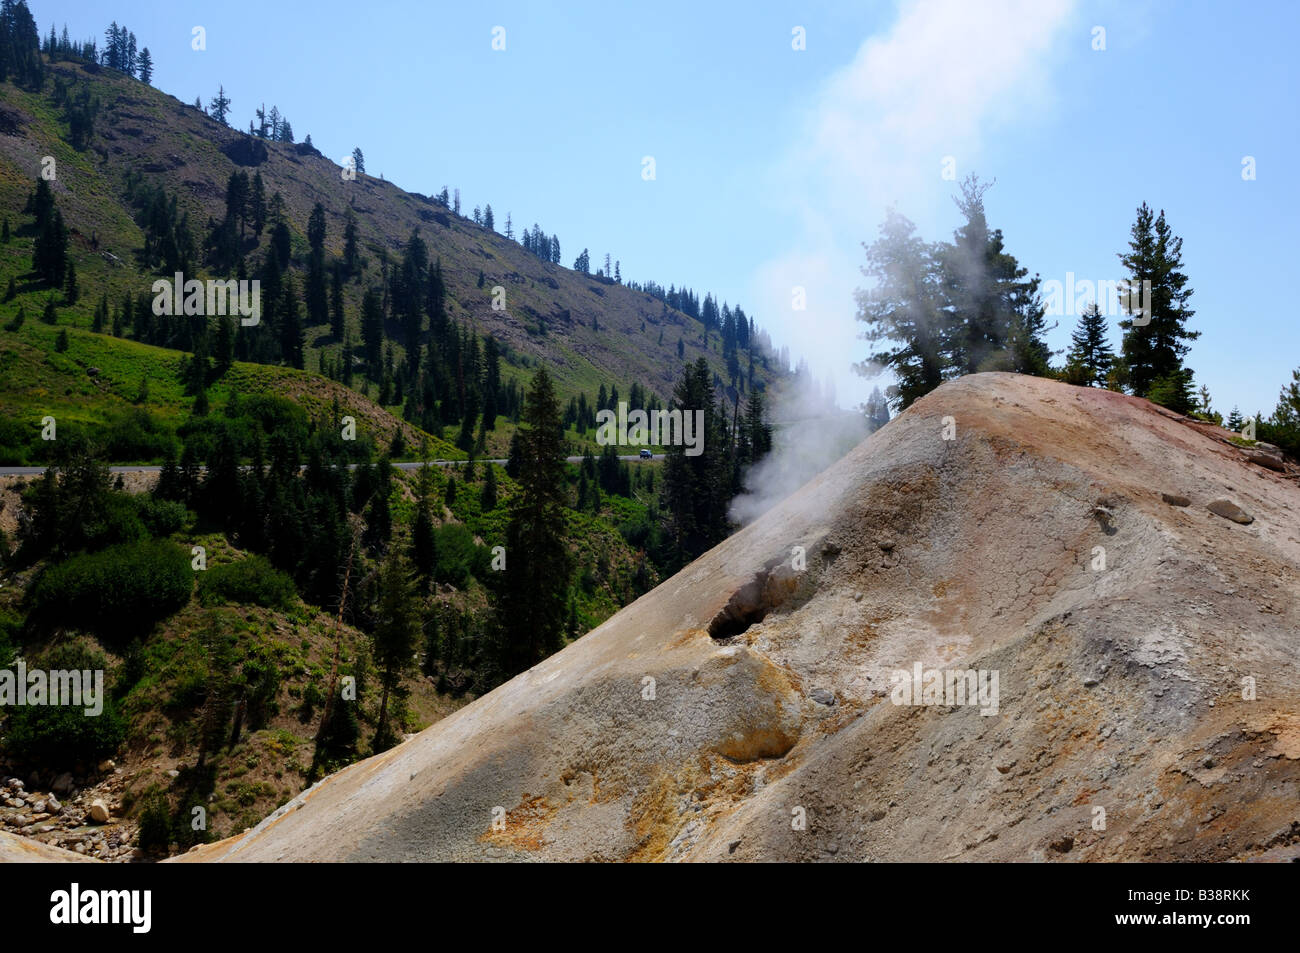 Steam vent and deposits from volcanic activity. Lassen Volcanic National Park, California, USA. - Stock Image